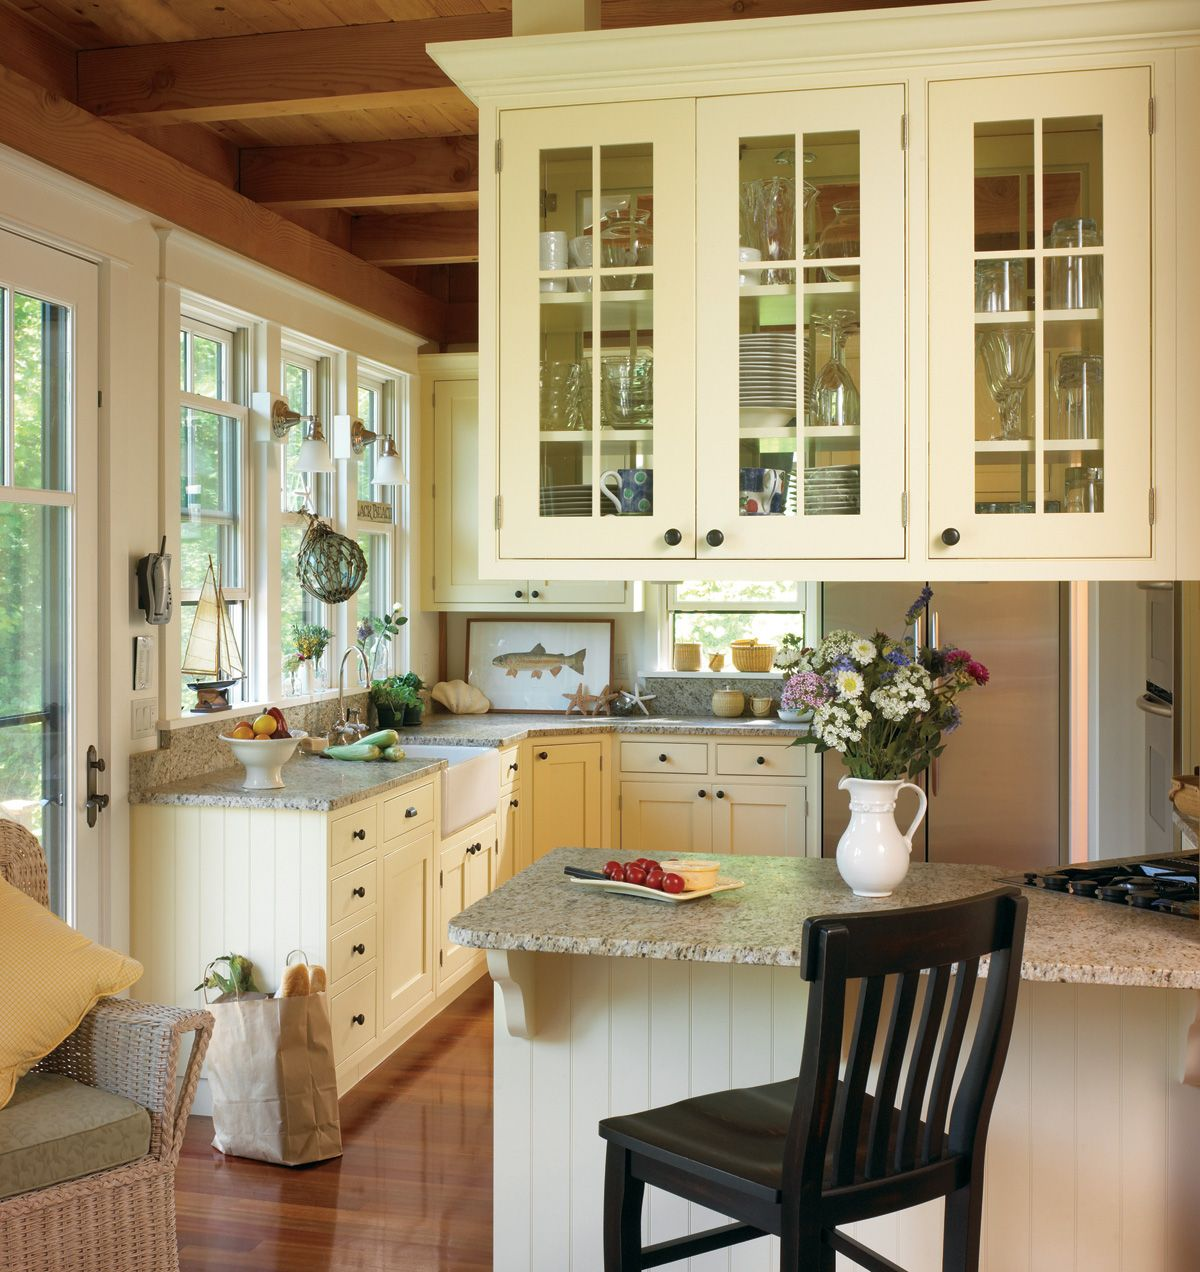 Small Crop Of French Country Cottage Kitchen Designs